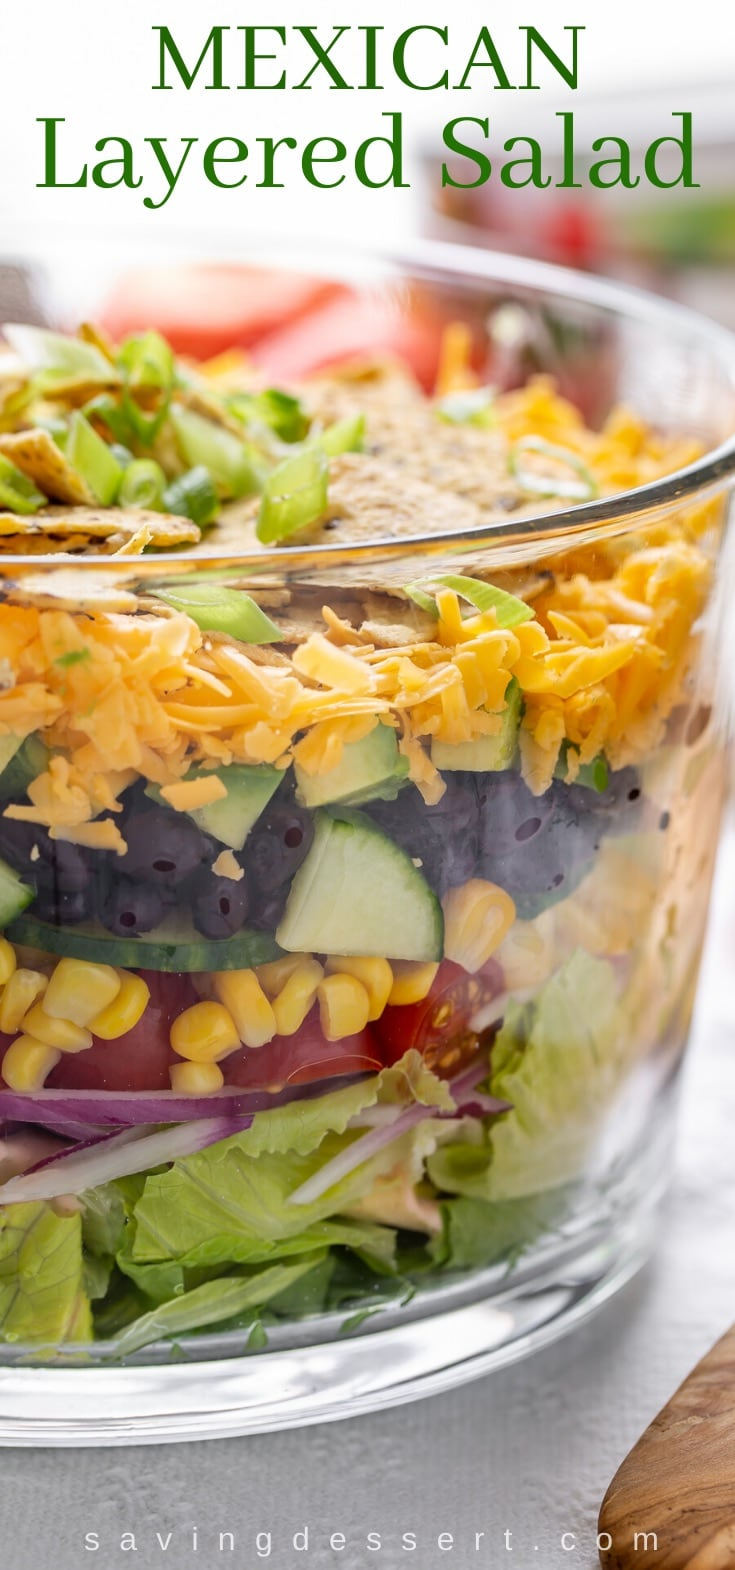 A trifle bowl filled with Mexican Layered Salad with chips on top